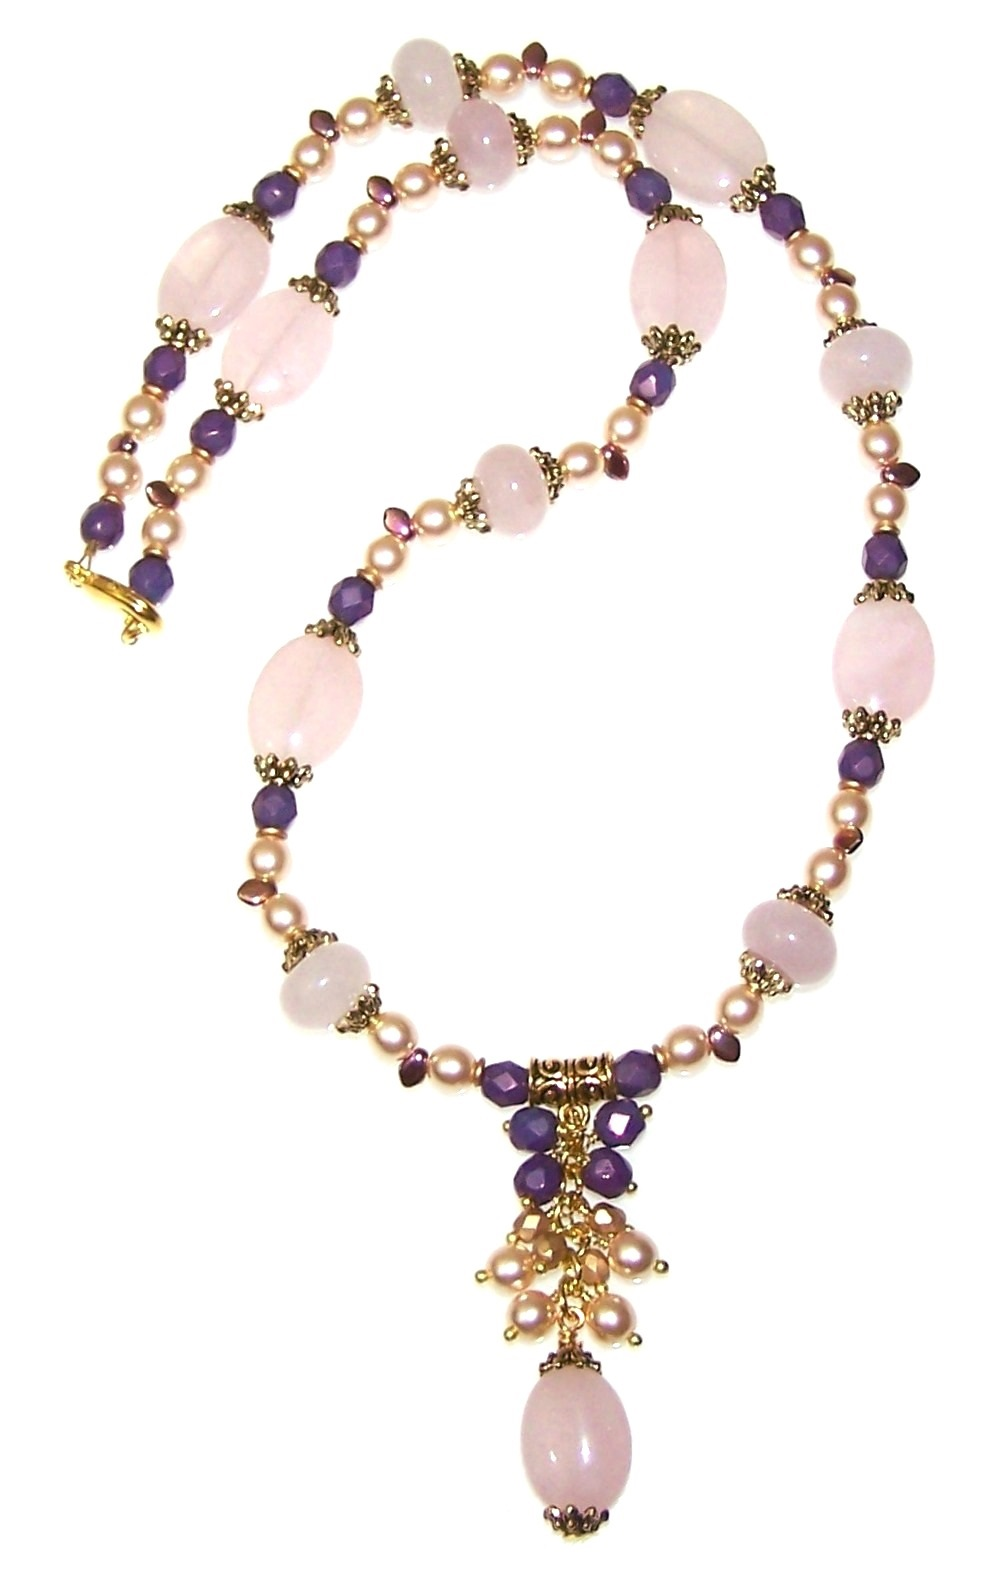 Heavenly Drops Necklace Free Beaded Jewelry Making Pattern